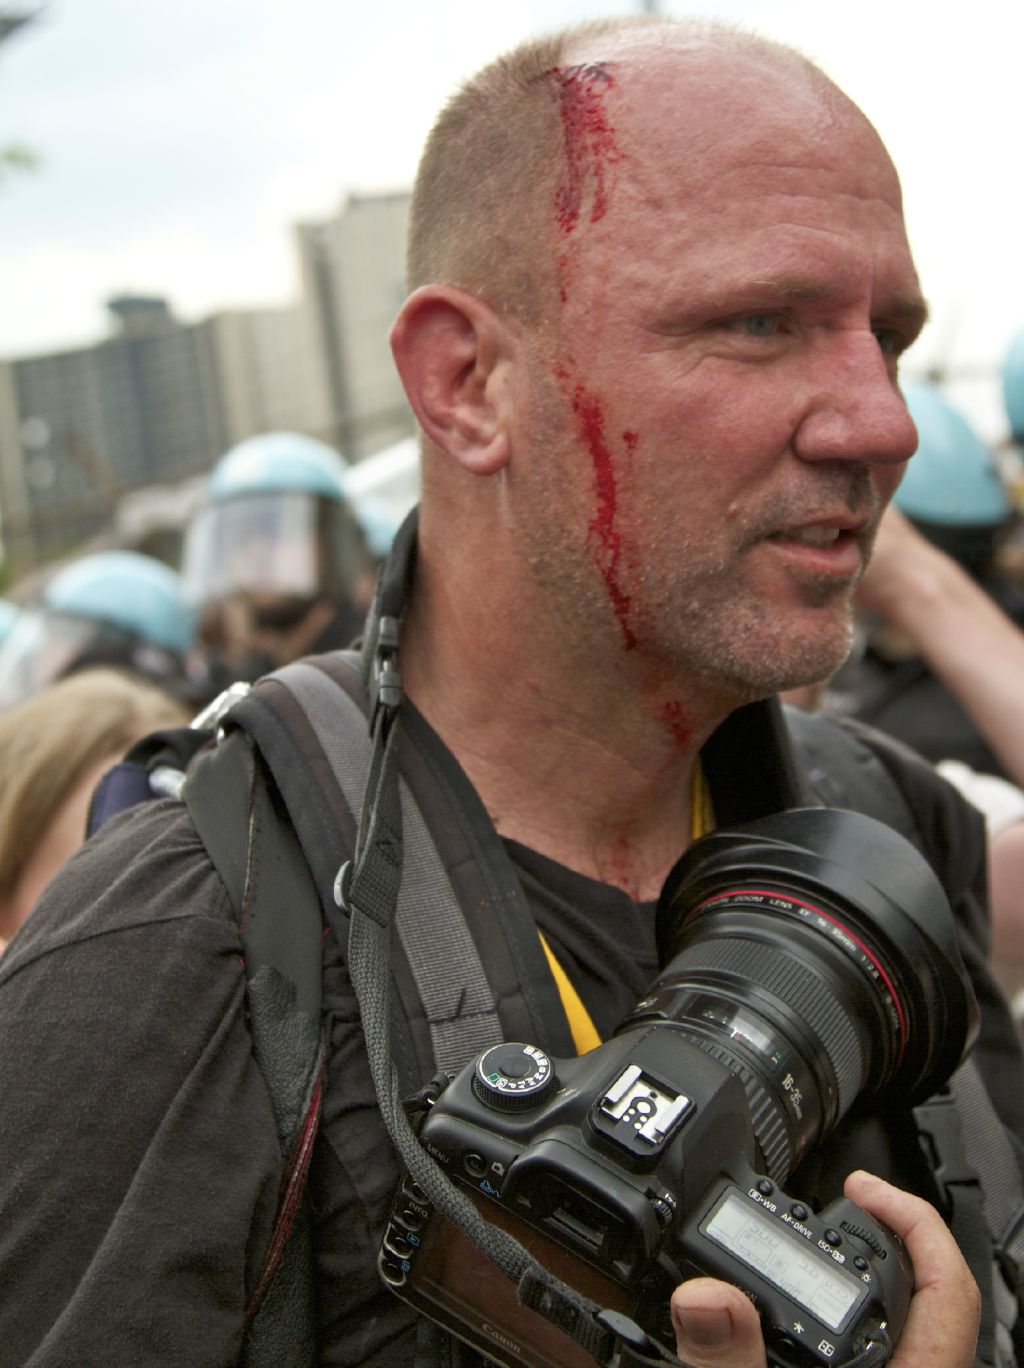 We carry cameras. They carry guns, batons, #LRAD's & marching orders from the 1%: http://t.co/brNuHcQT via @AmberLyon #NoNATO